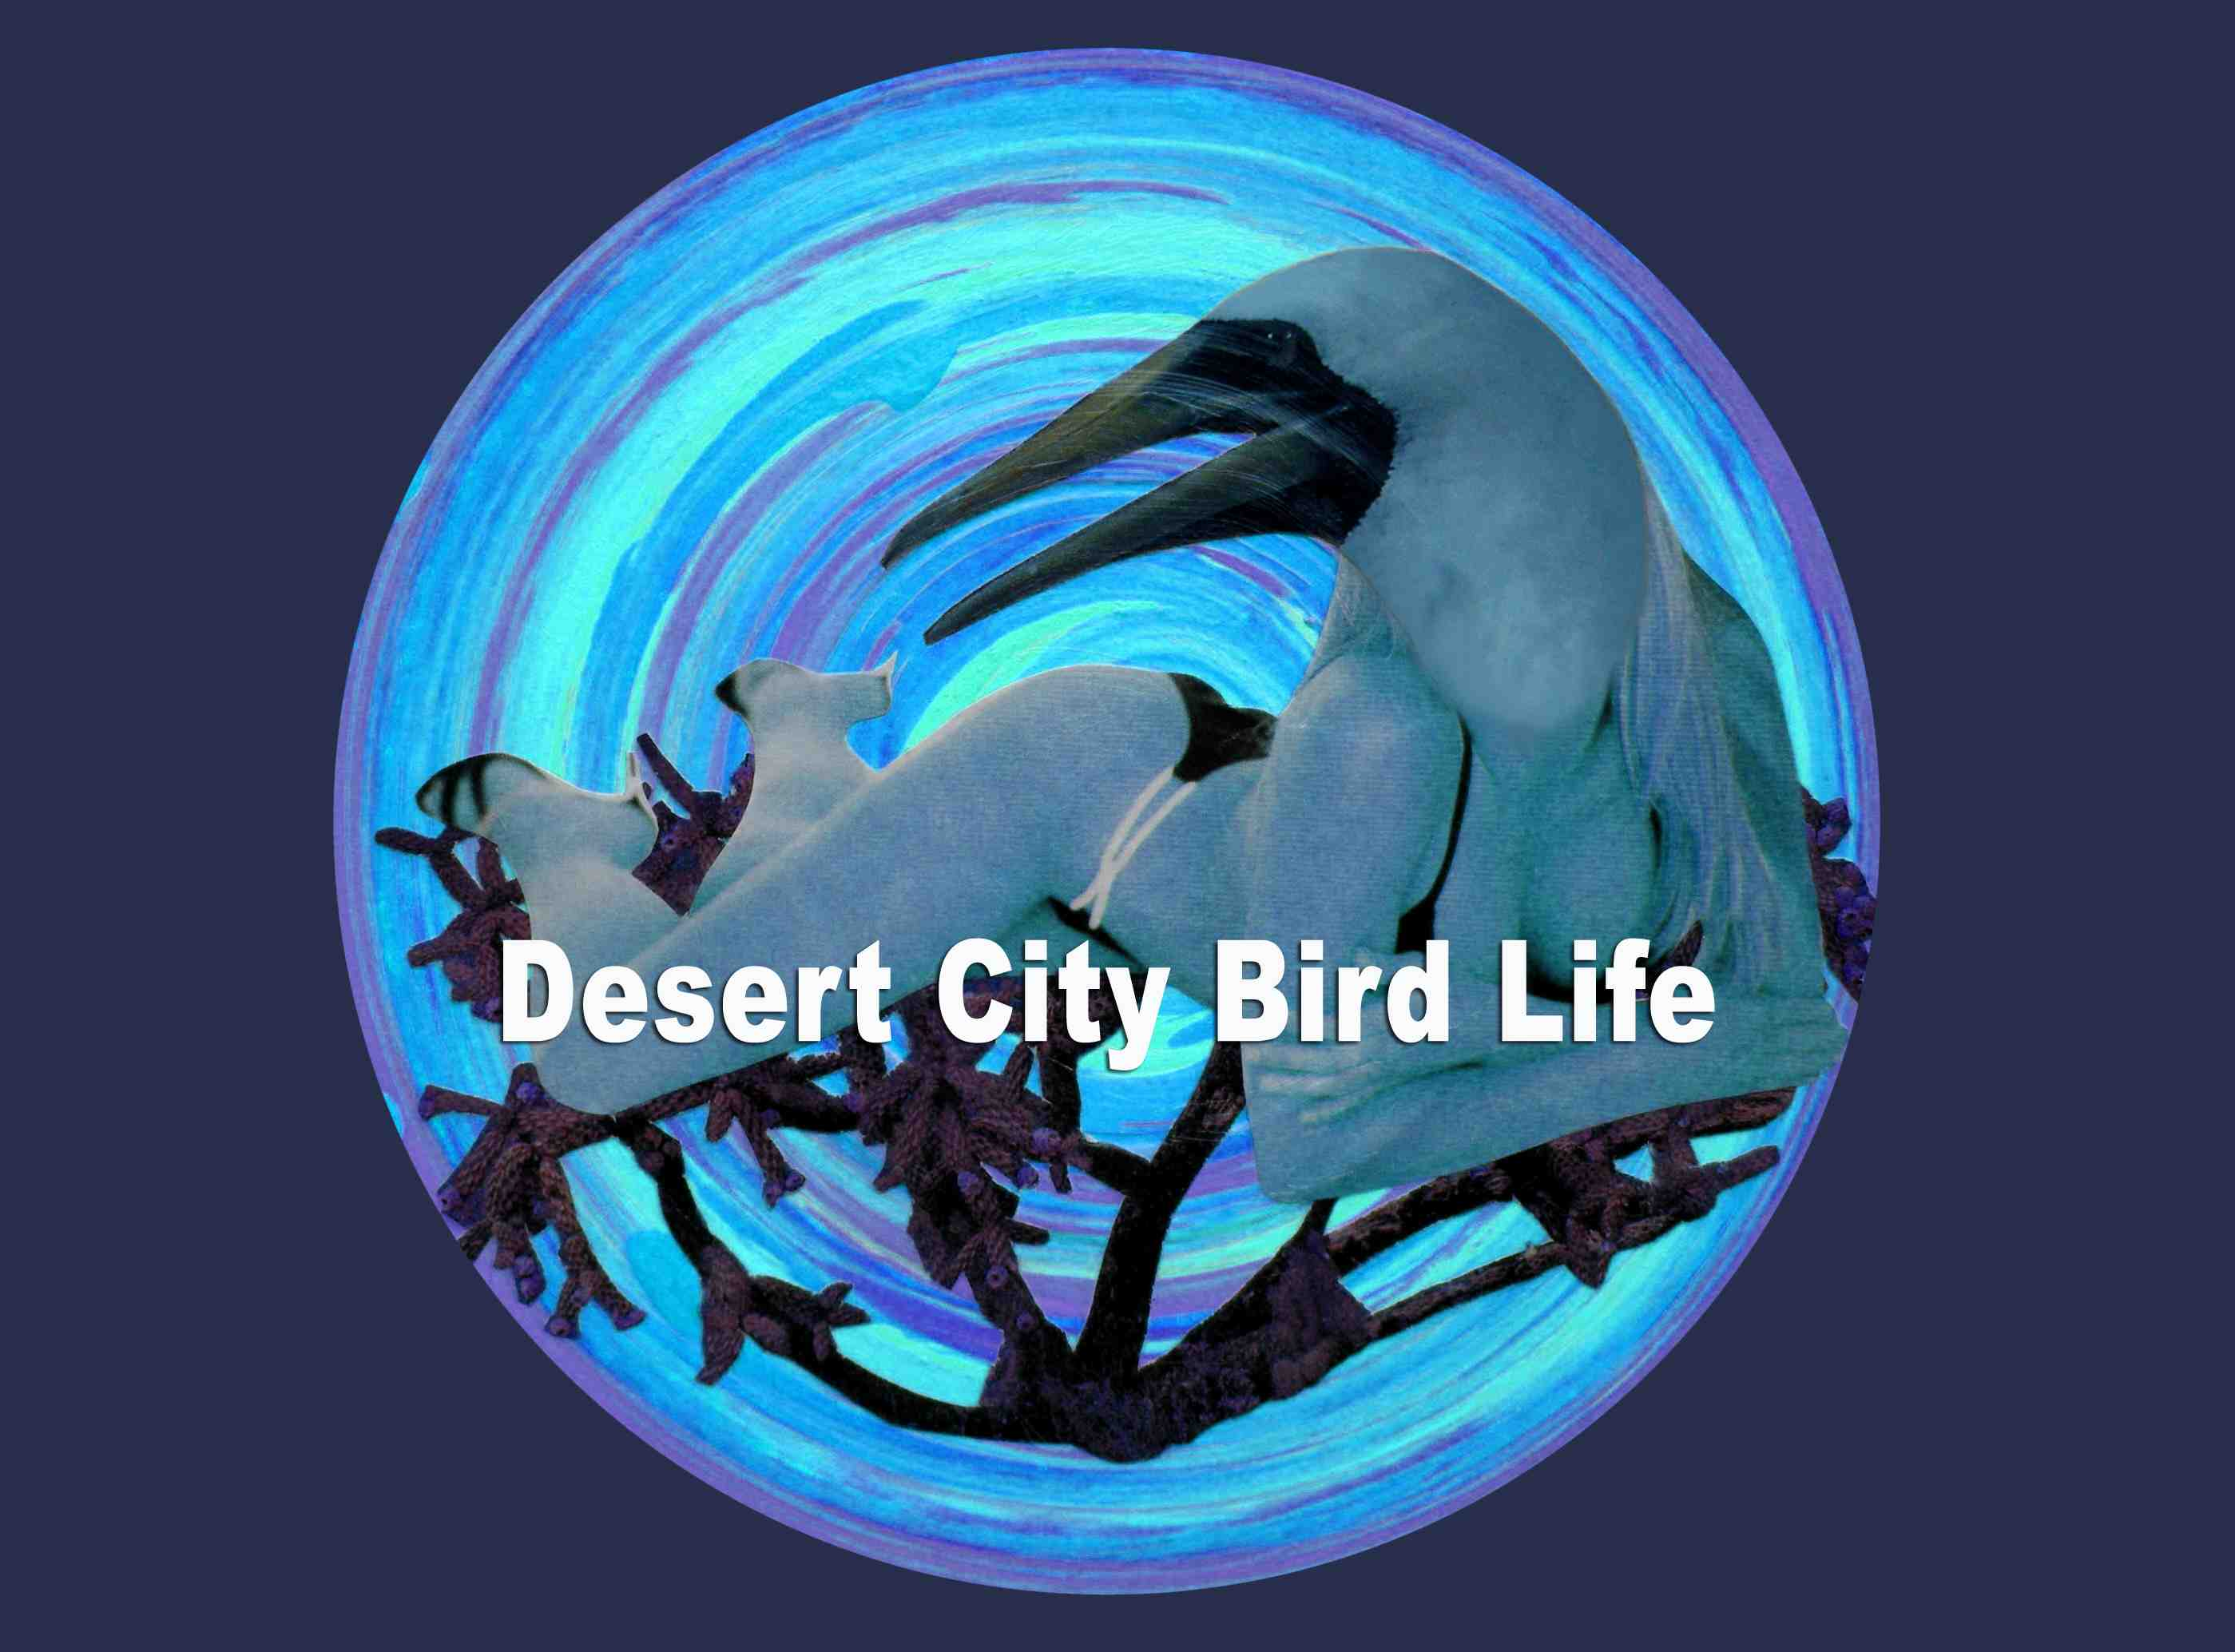 Desert City Bird Life